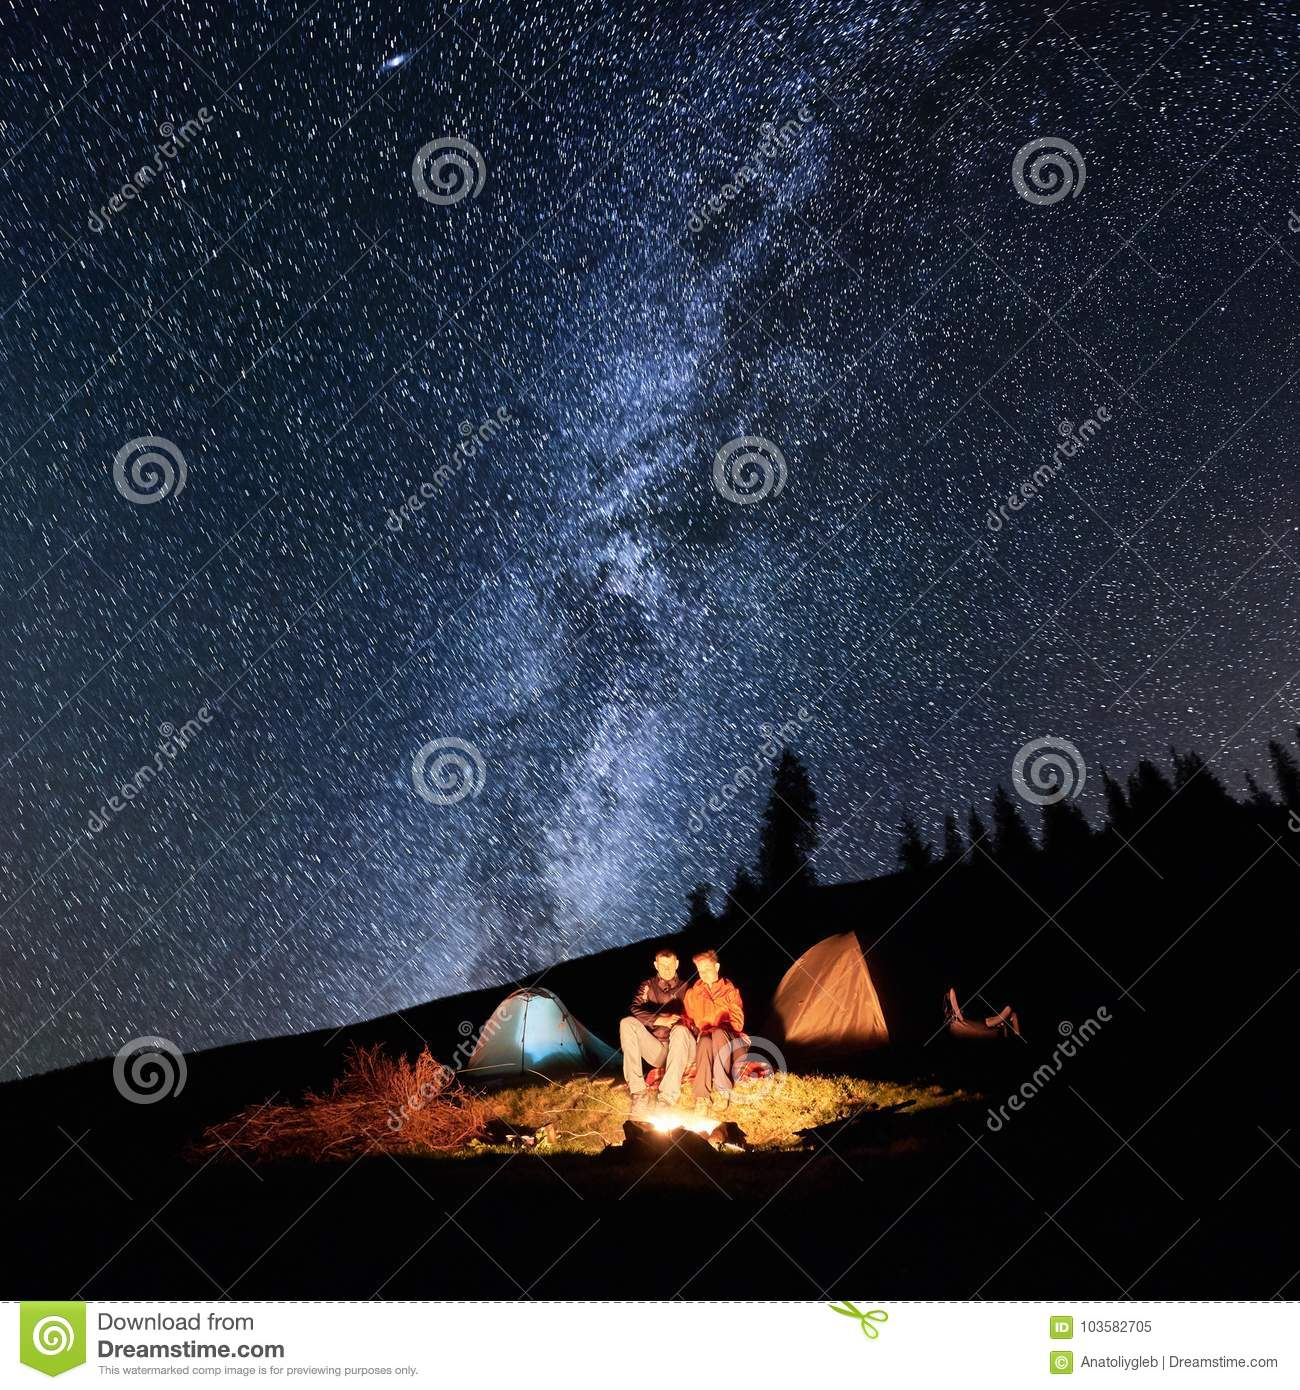 Couple Tourists Near Campfire And Tents Under Night Sky Full Of Stars And Milky Way Stock Image Image Of Starry Hike 103582705